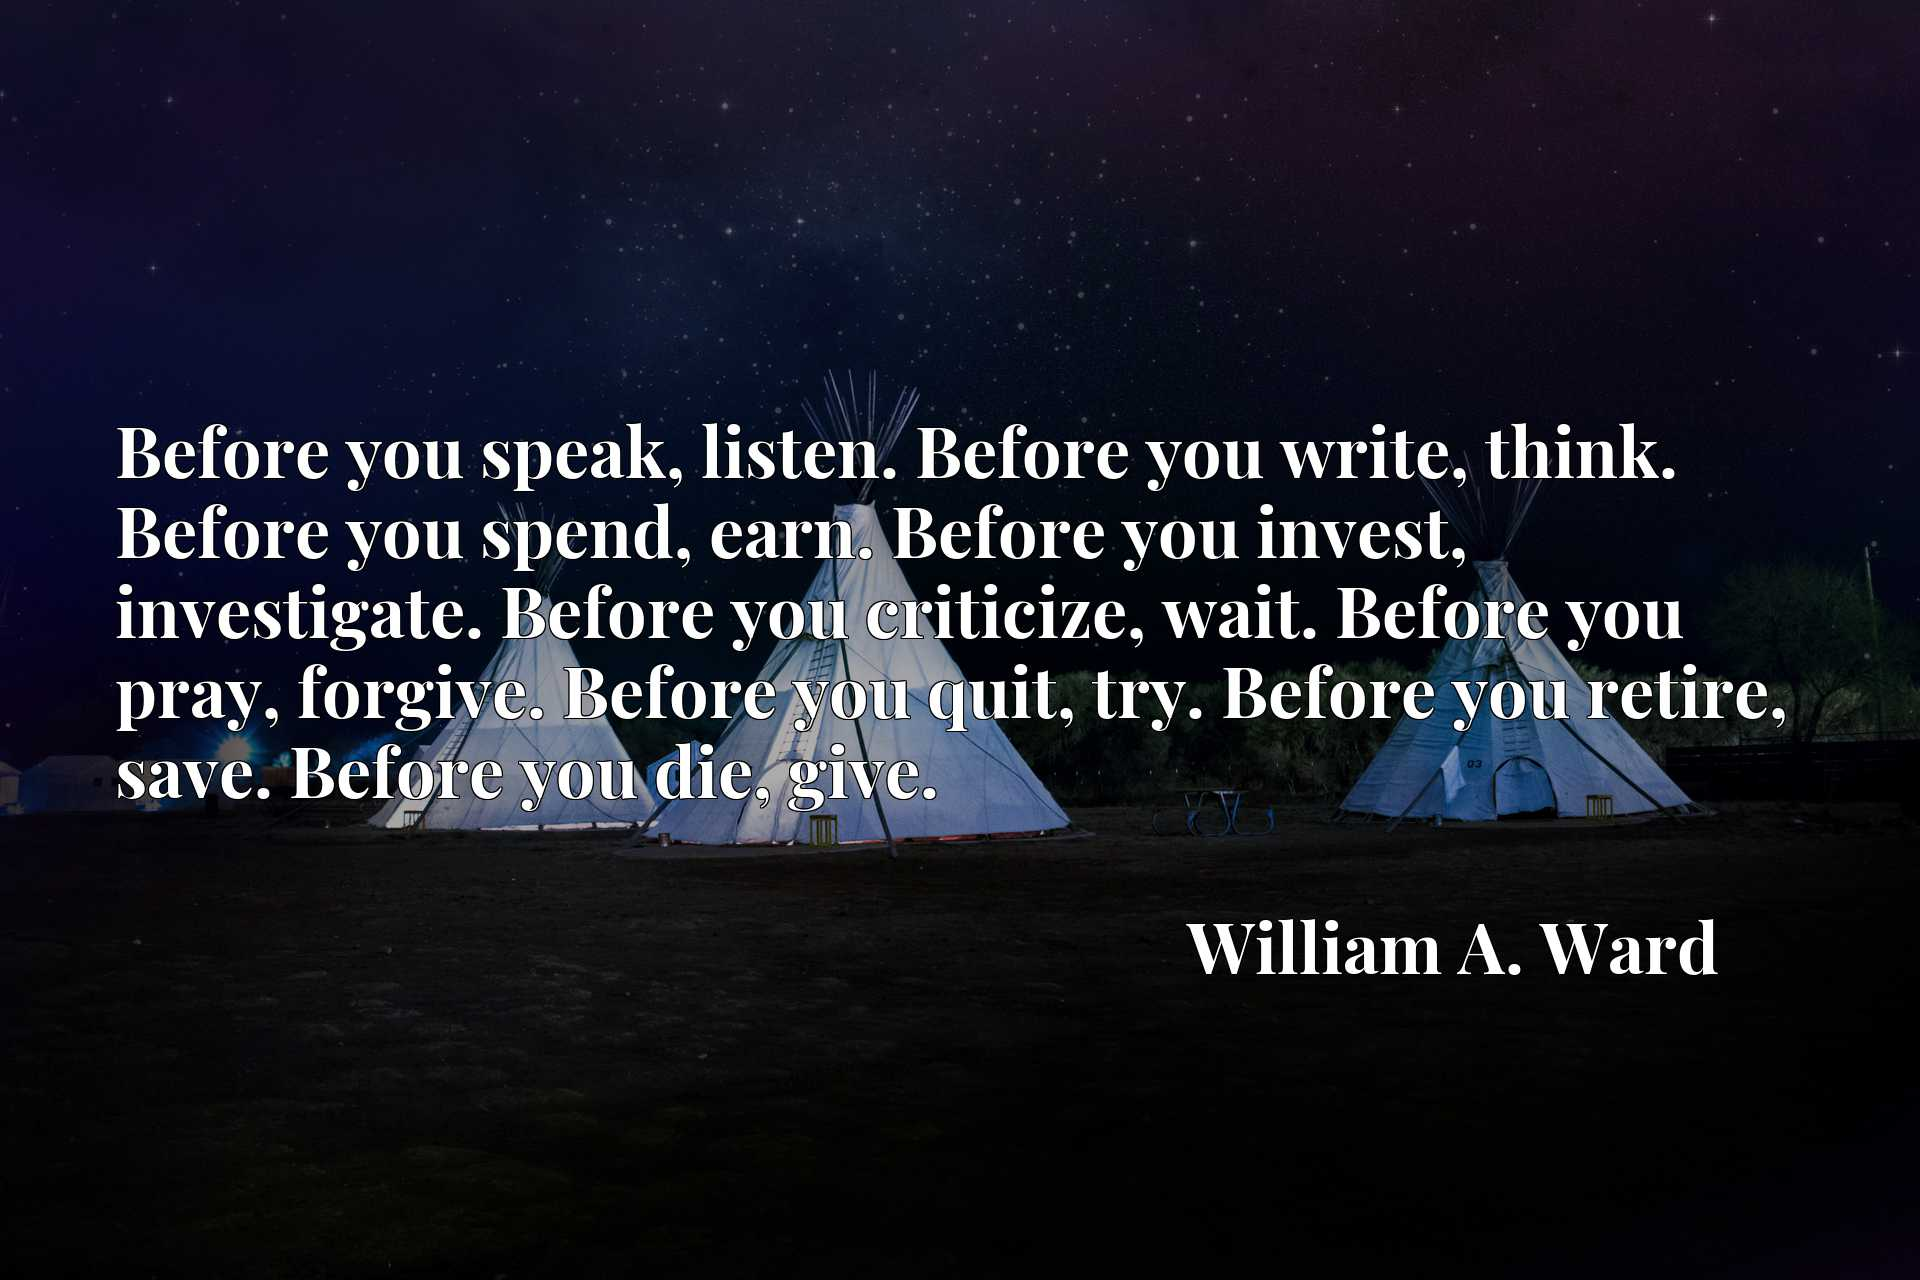 Before you speak, listen. Before you write, think. Before you spend, earn. Before you invest, investigate. Before you criticize, wait. Before you pray, forgive. Before you quit, try. Before you retire, save. Before you die, give.